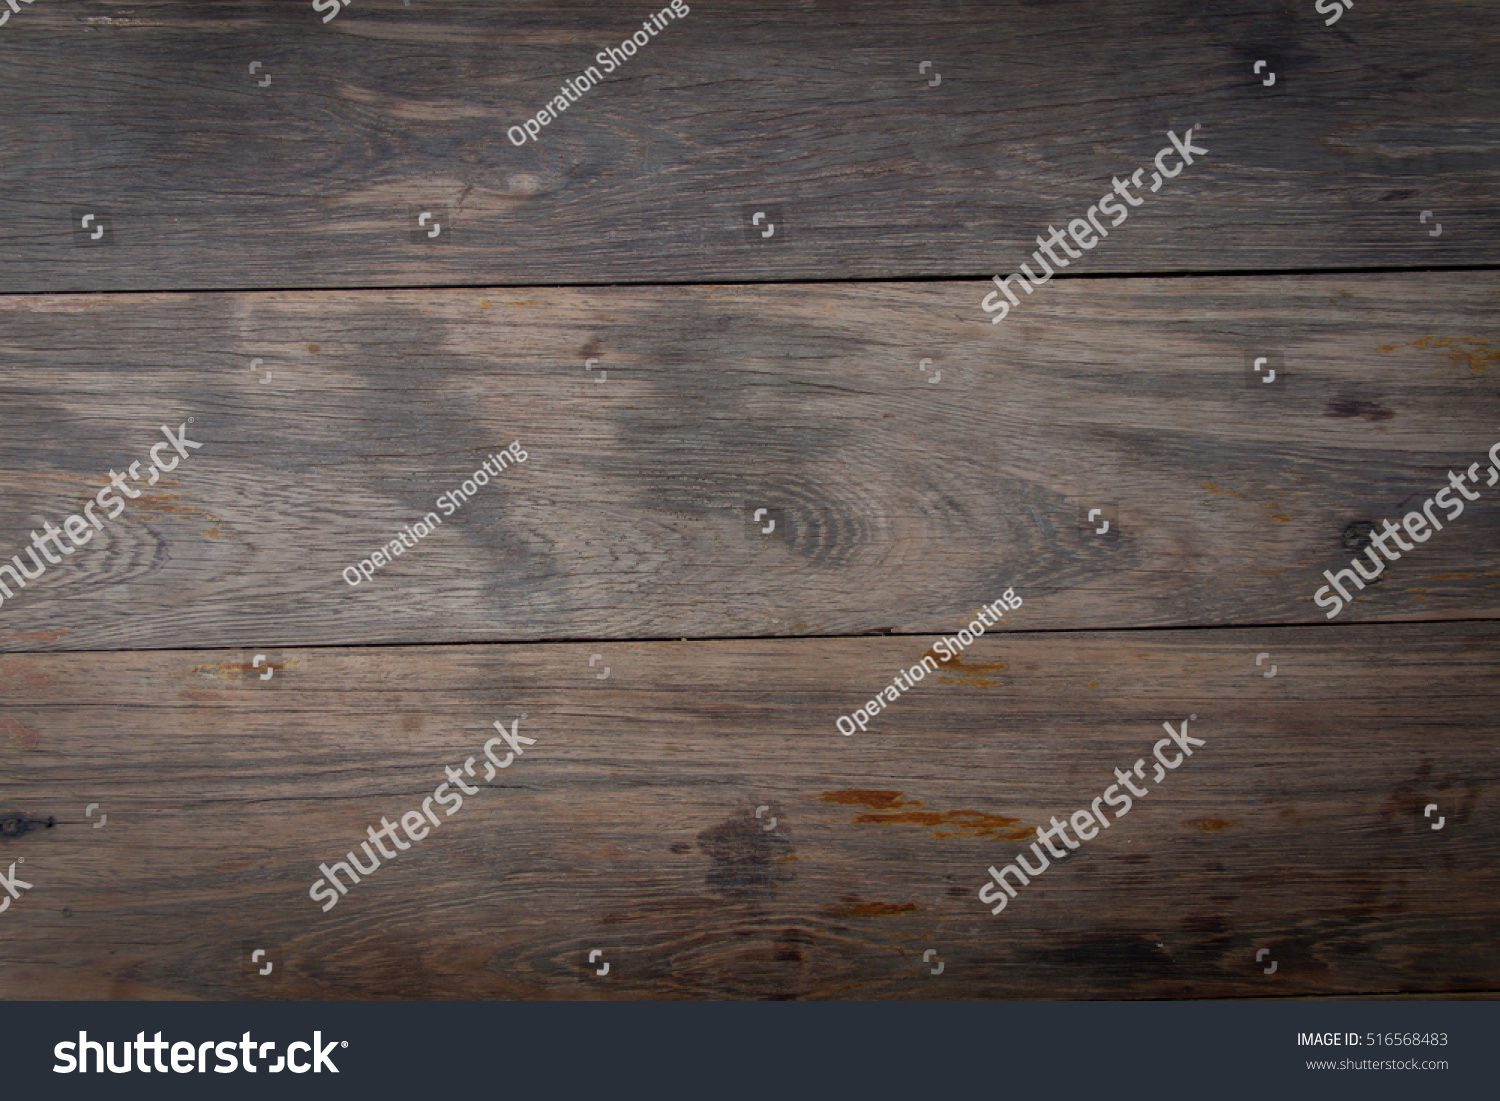 Wooden table surface background stock photo